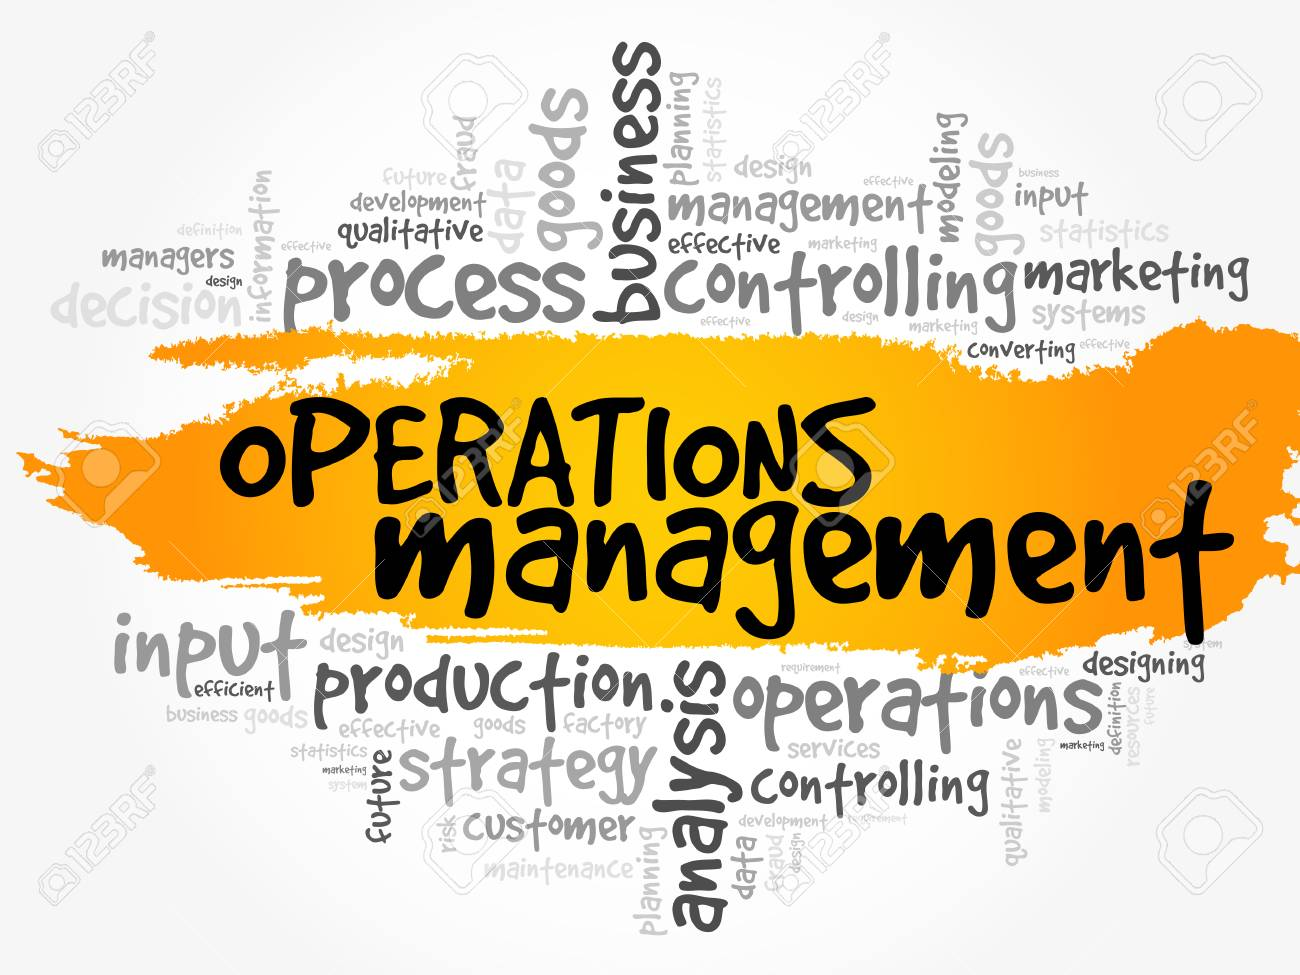 operations management word cloud collage, business concept